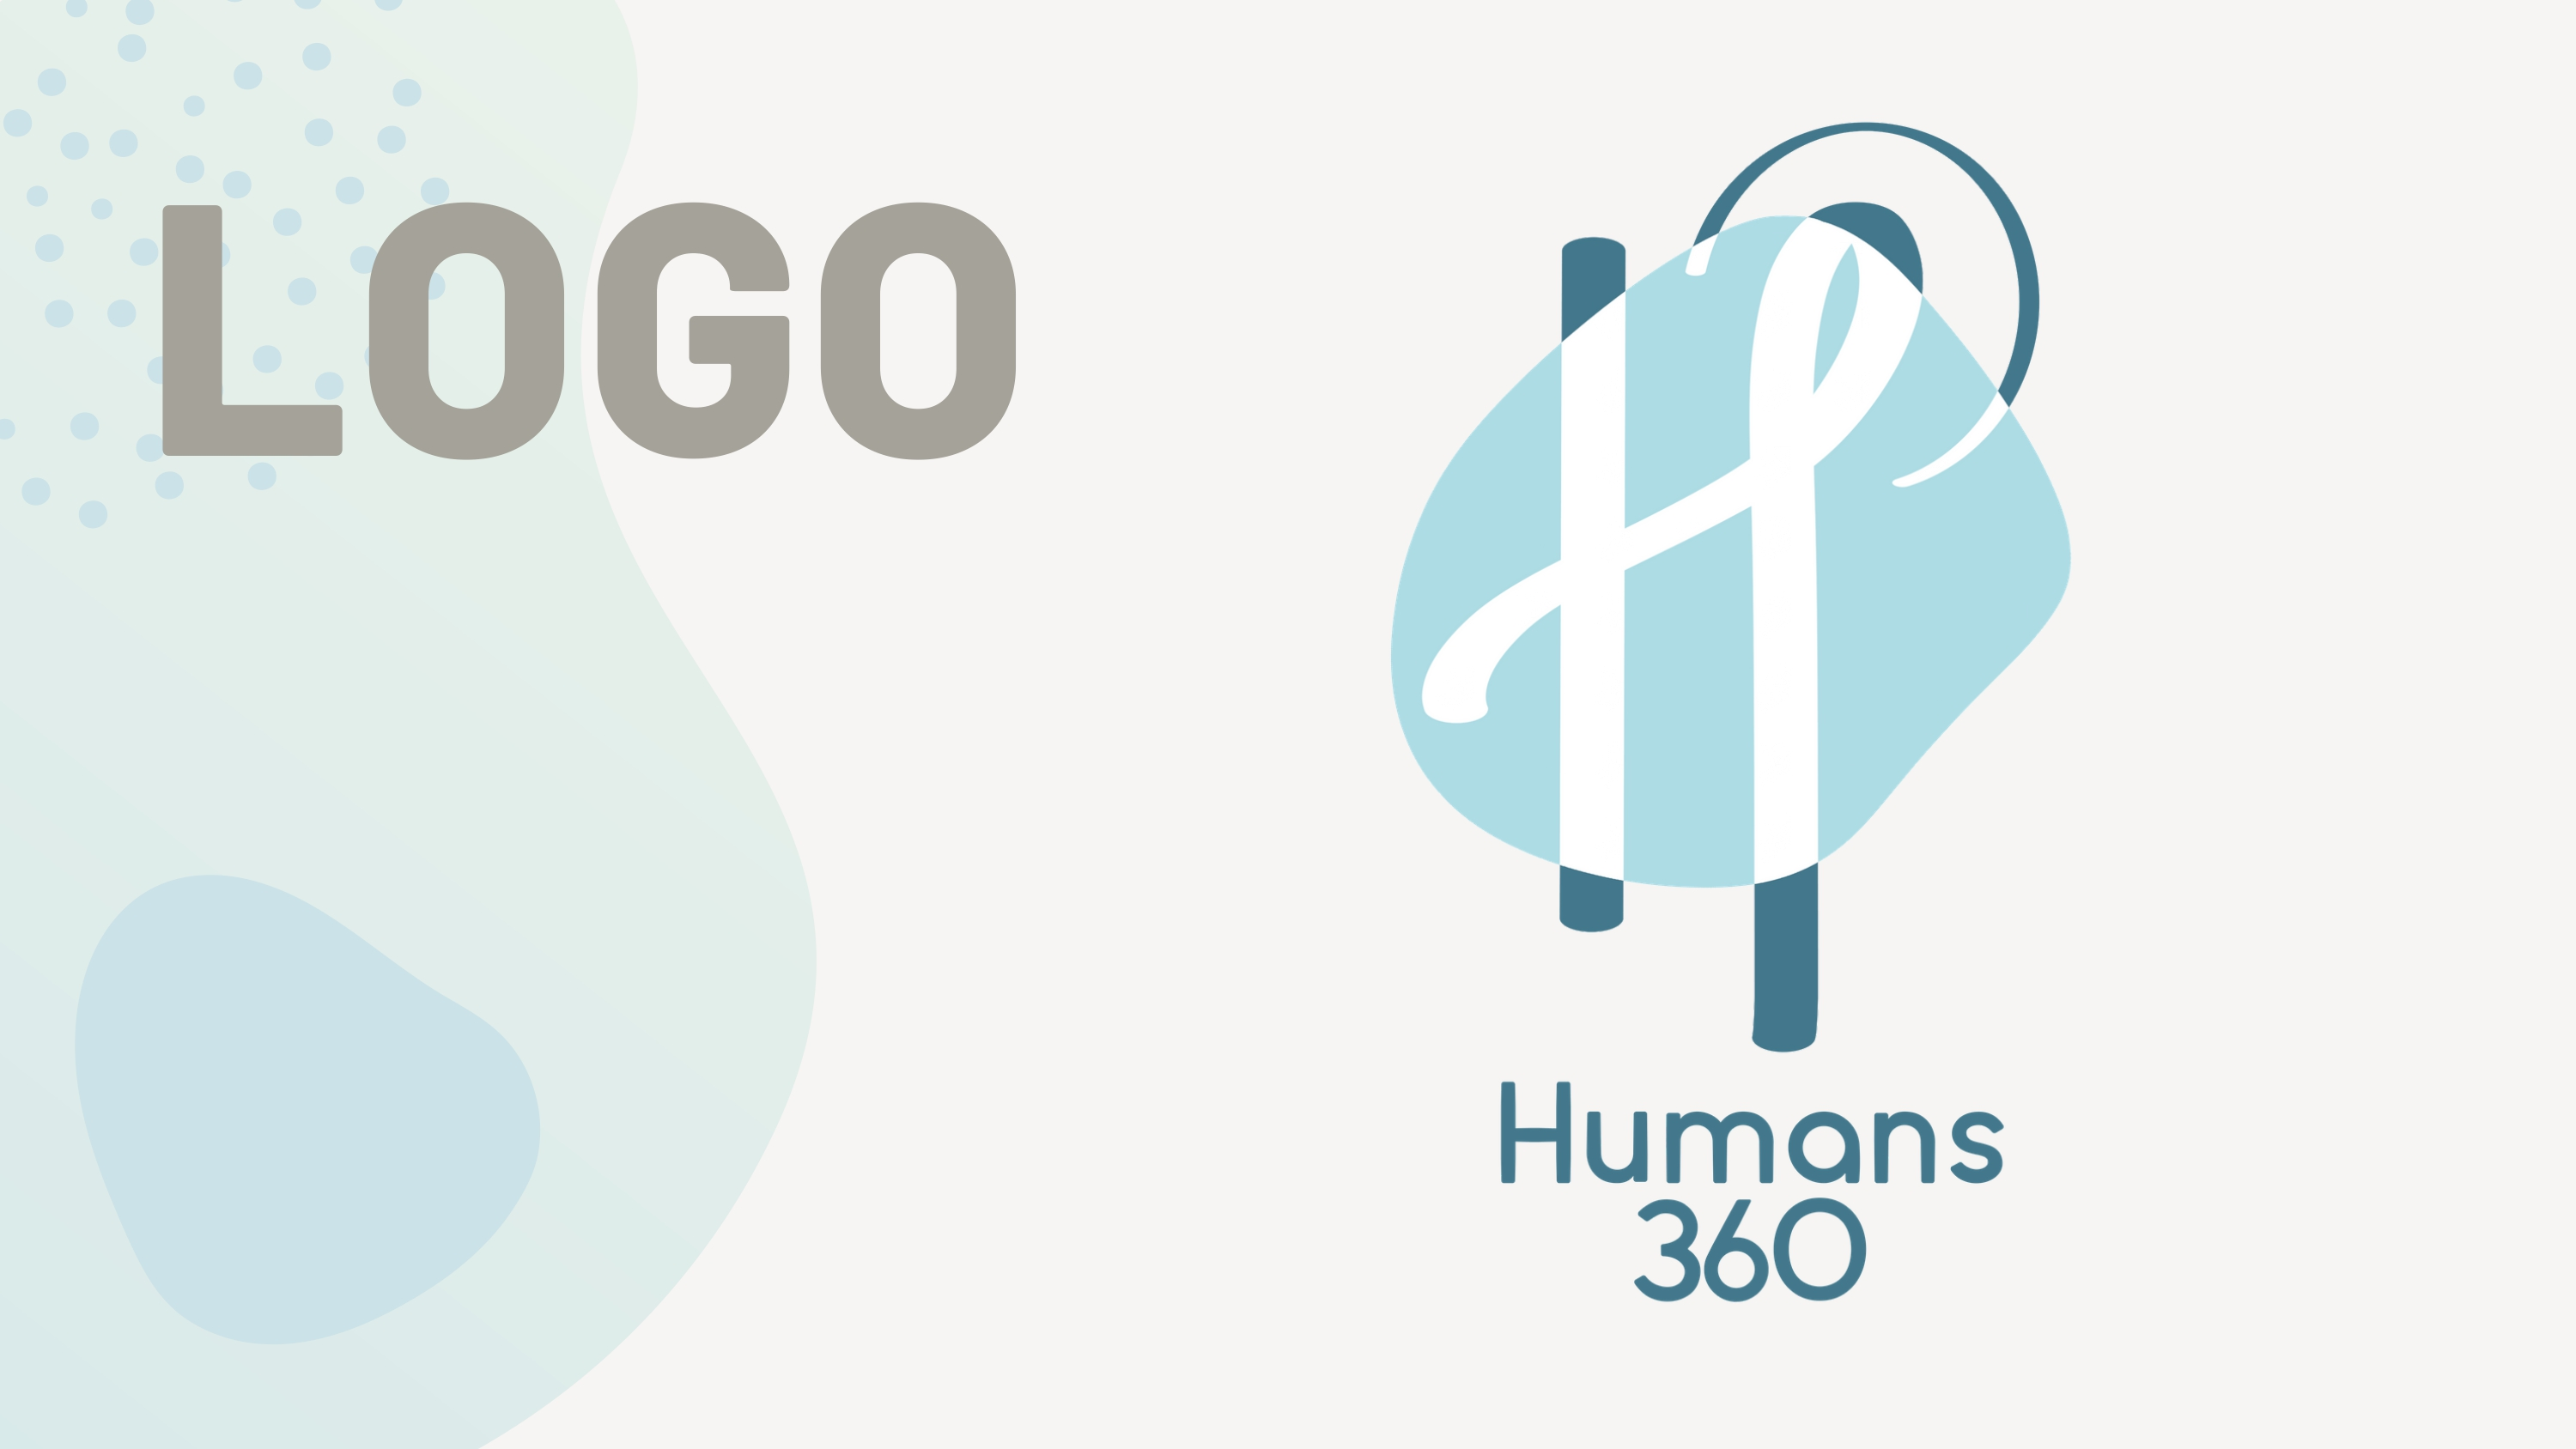 HUMANS-PC3_page-0006